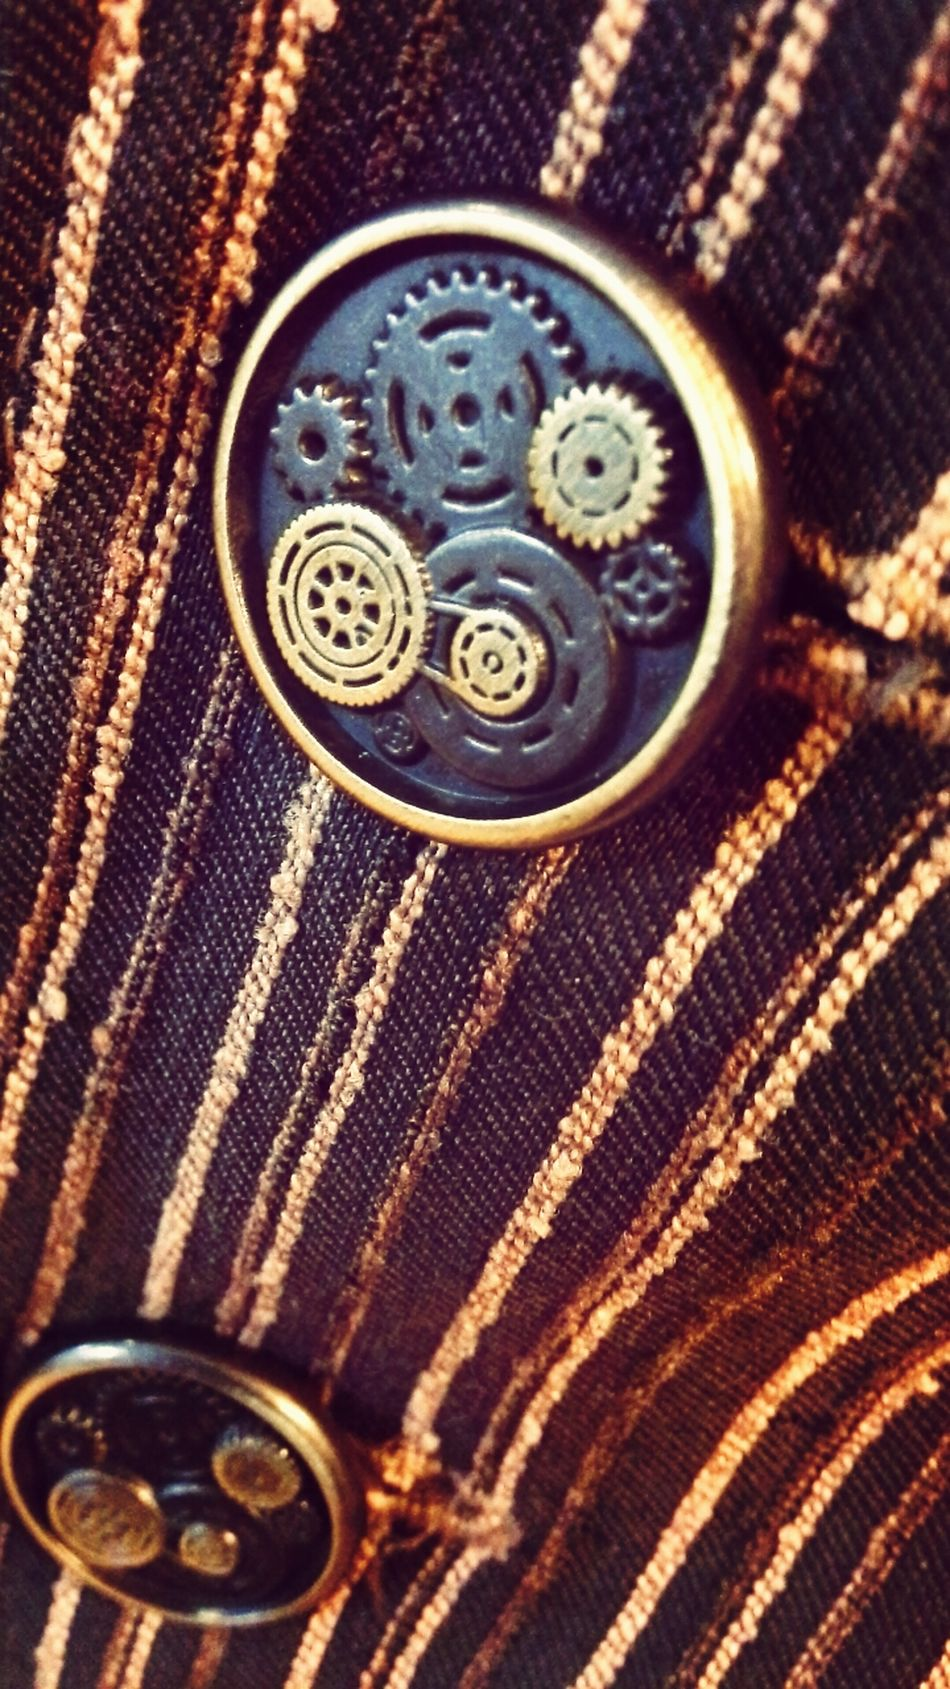 buttons of steampunk vest. Tornhemstudio Steampunk Buttons Gears